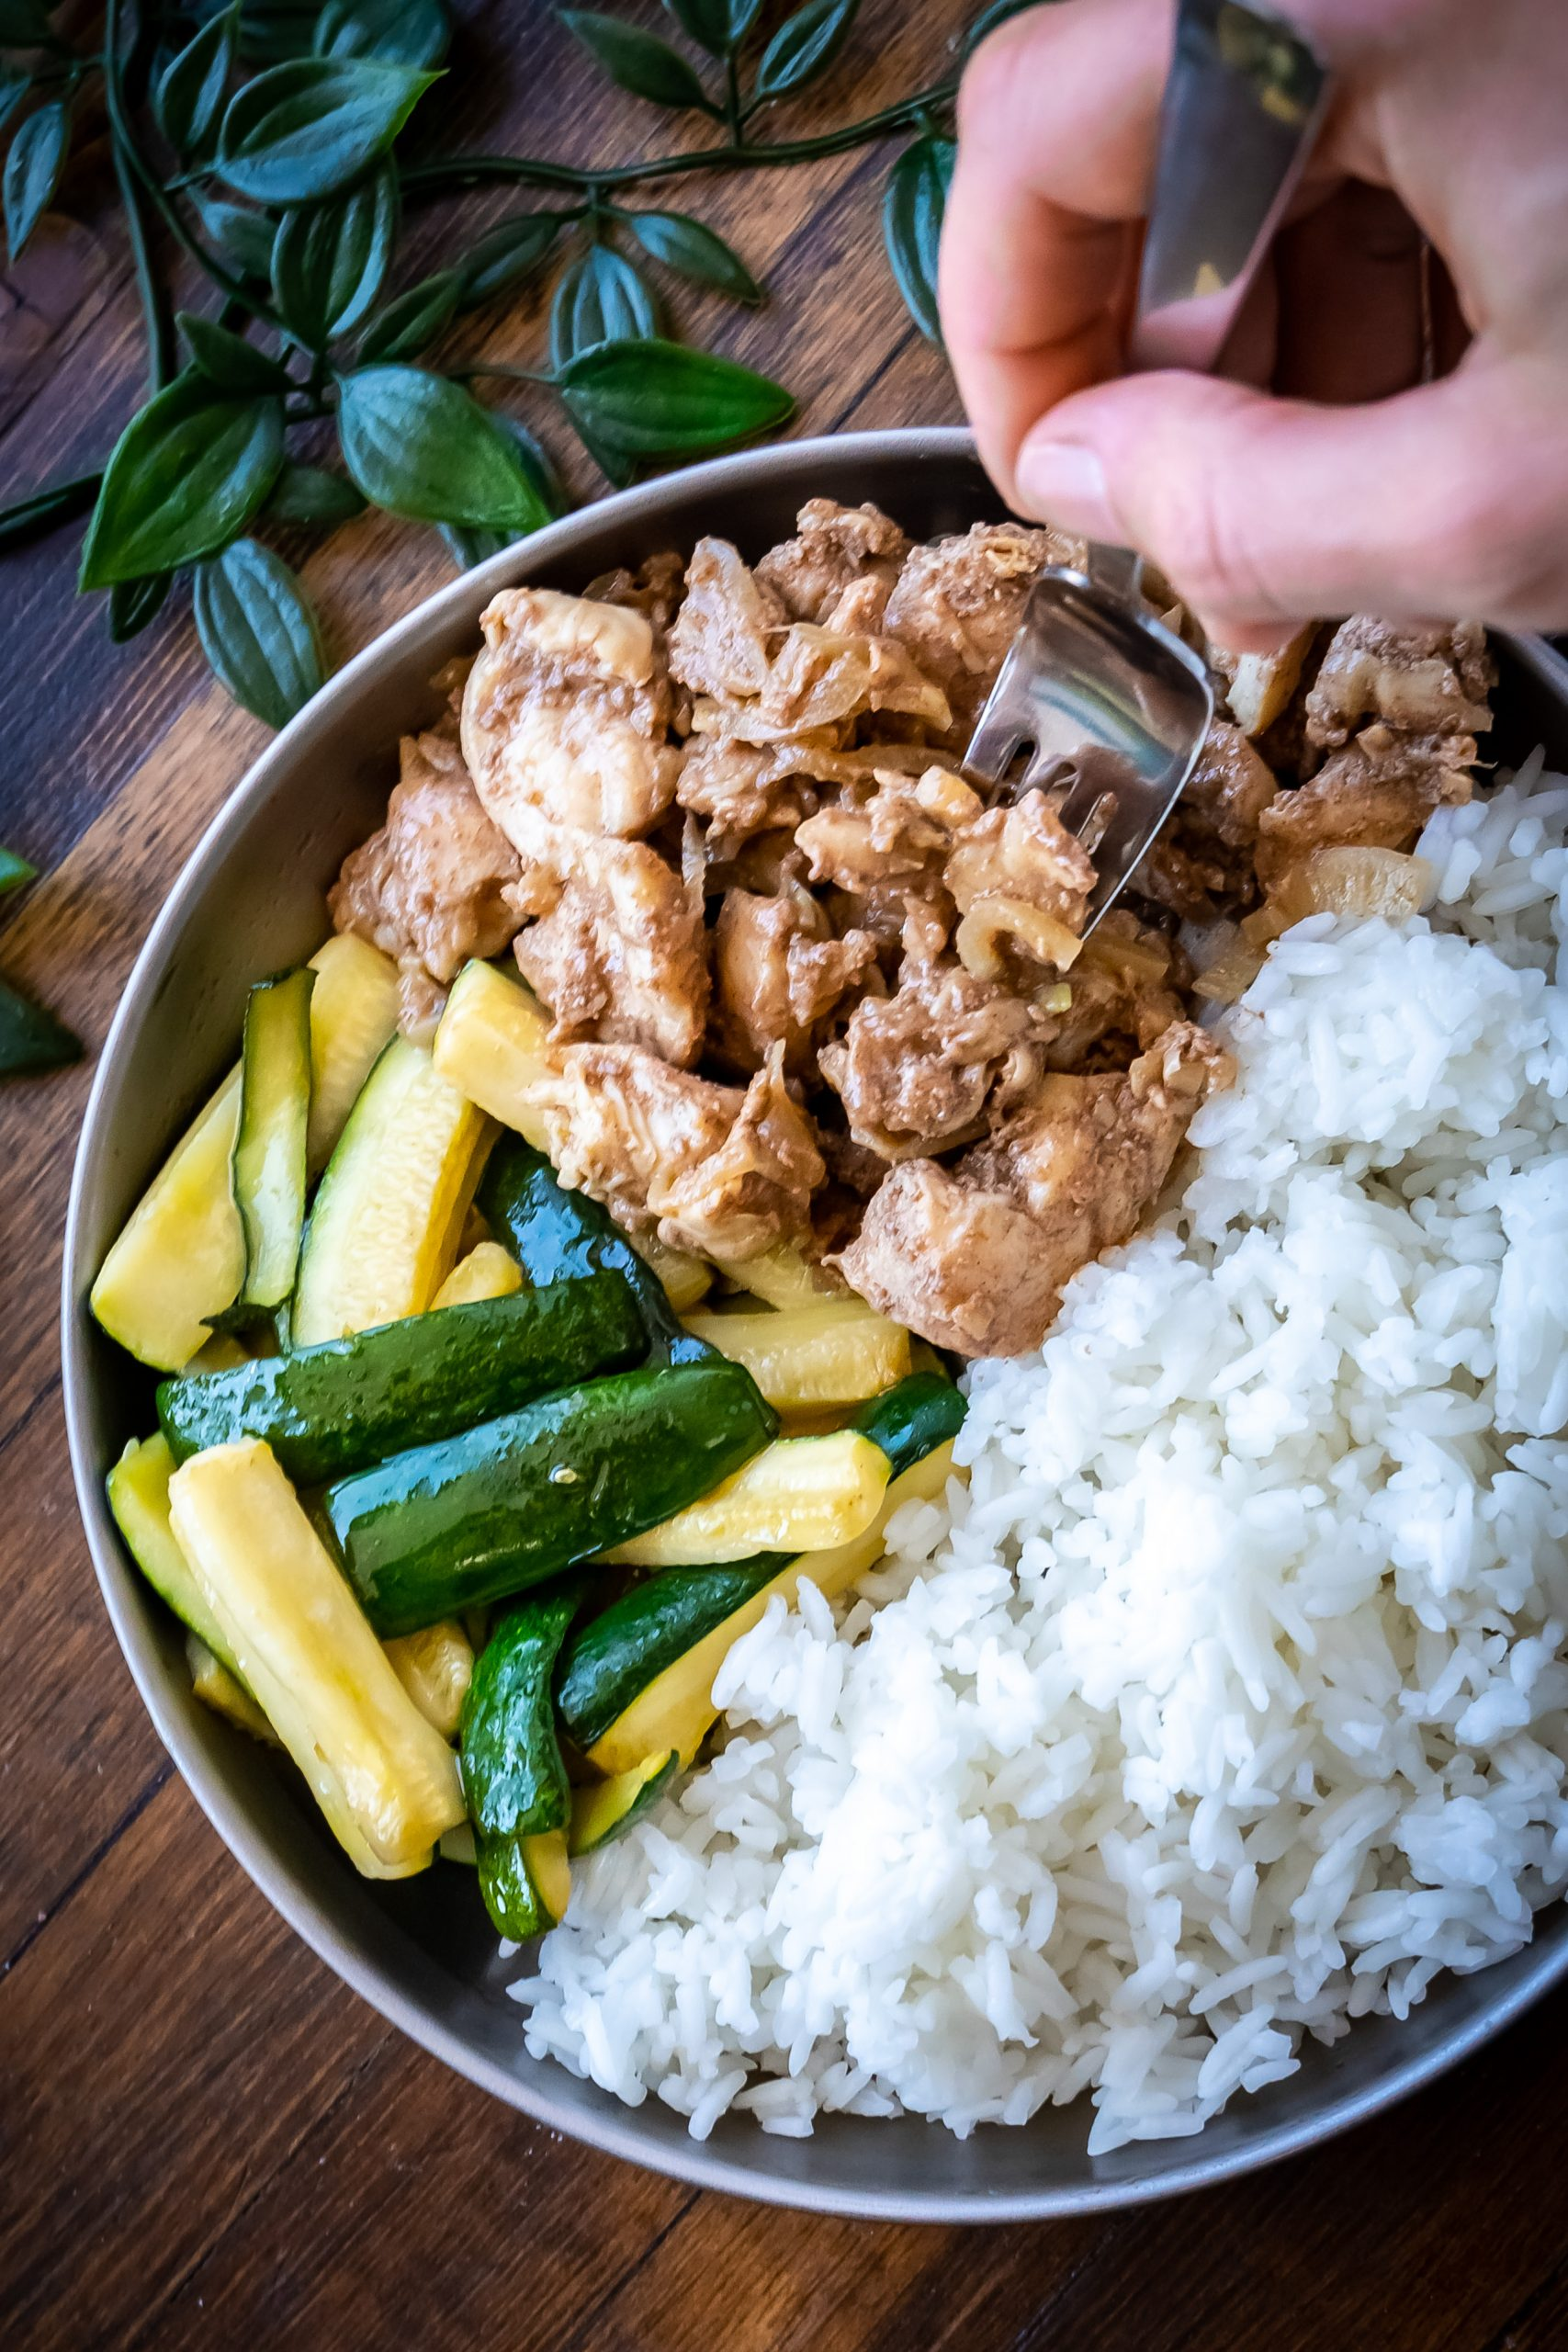 Enjoying Chinese Five Spice Chicken with zucchini spears and fluffy rice